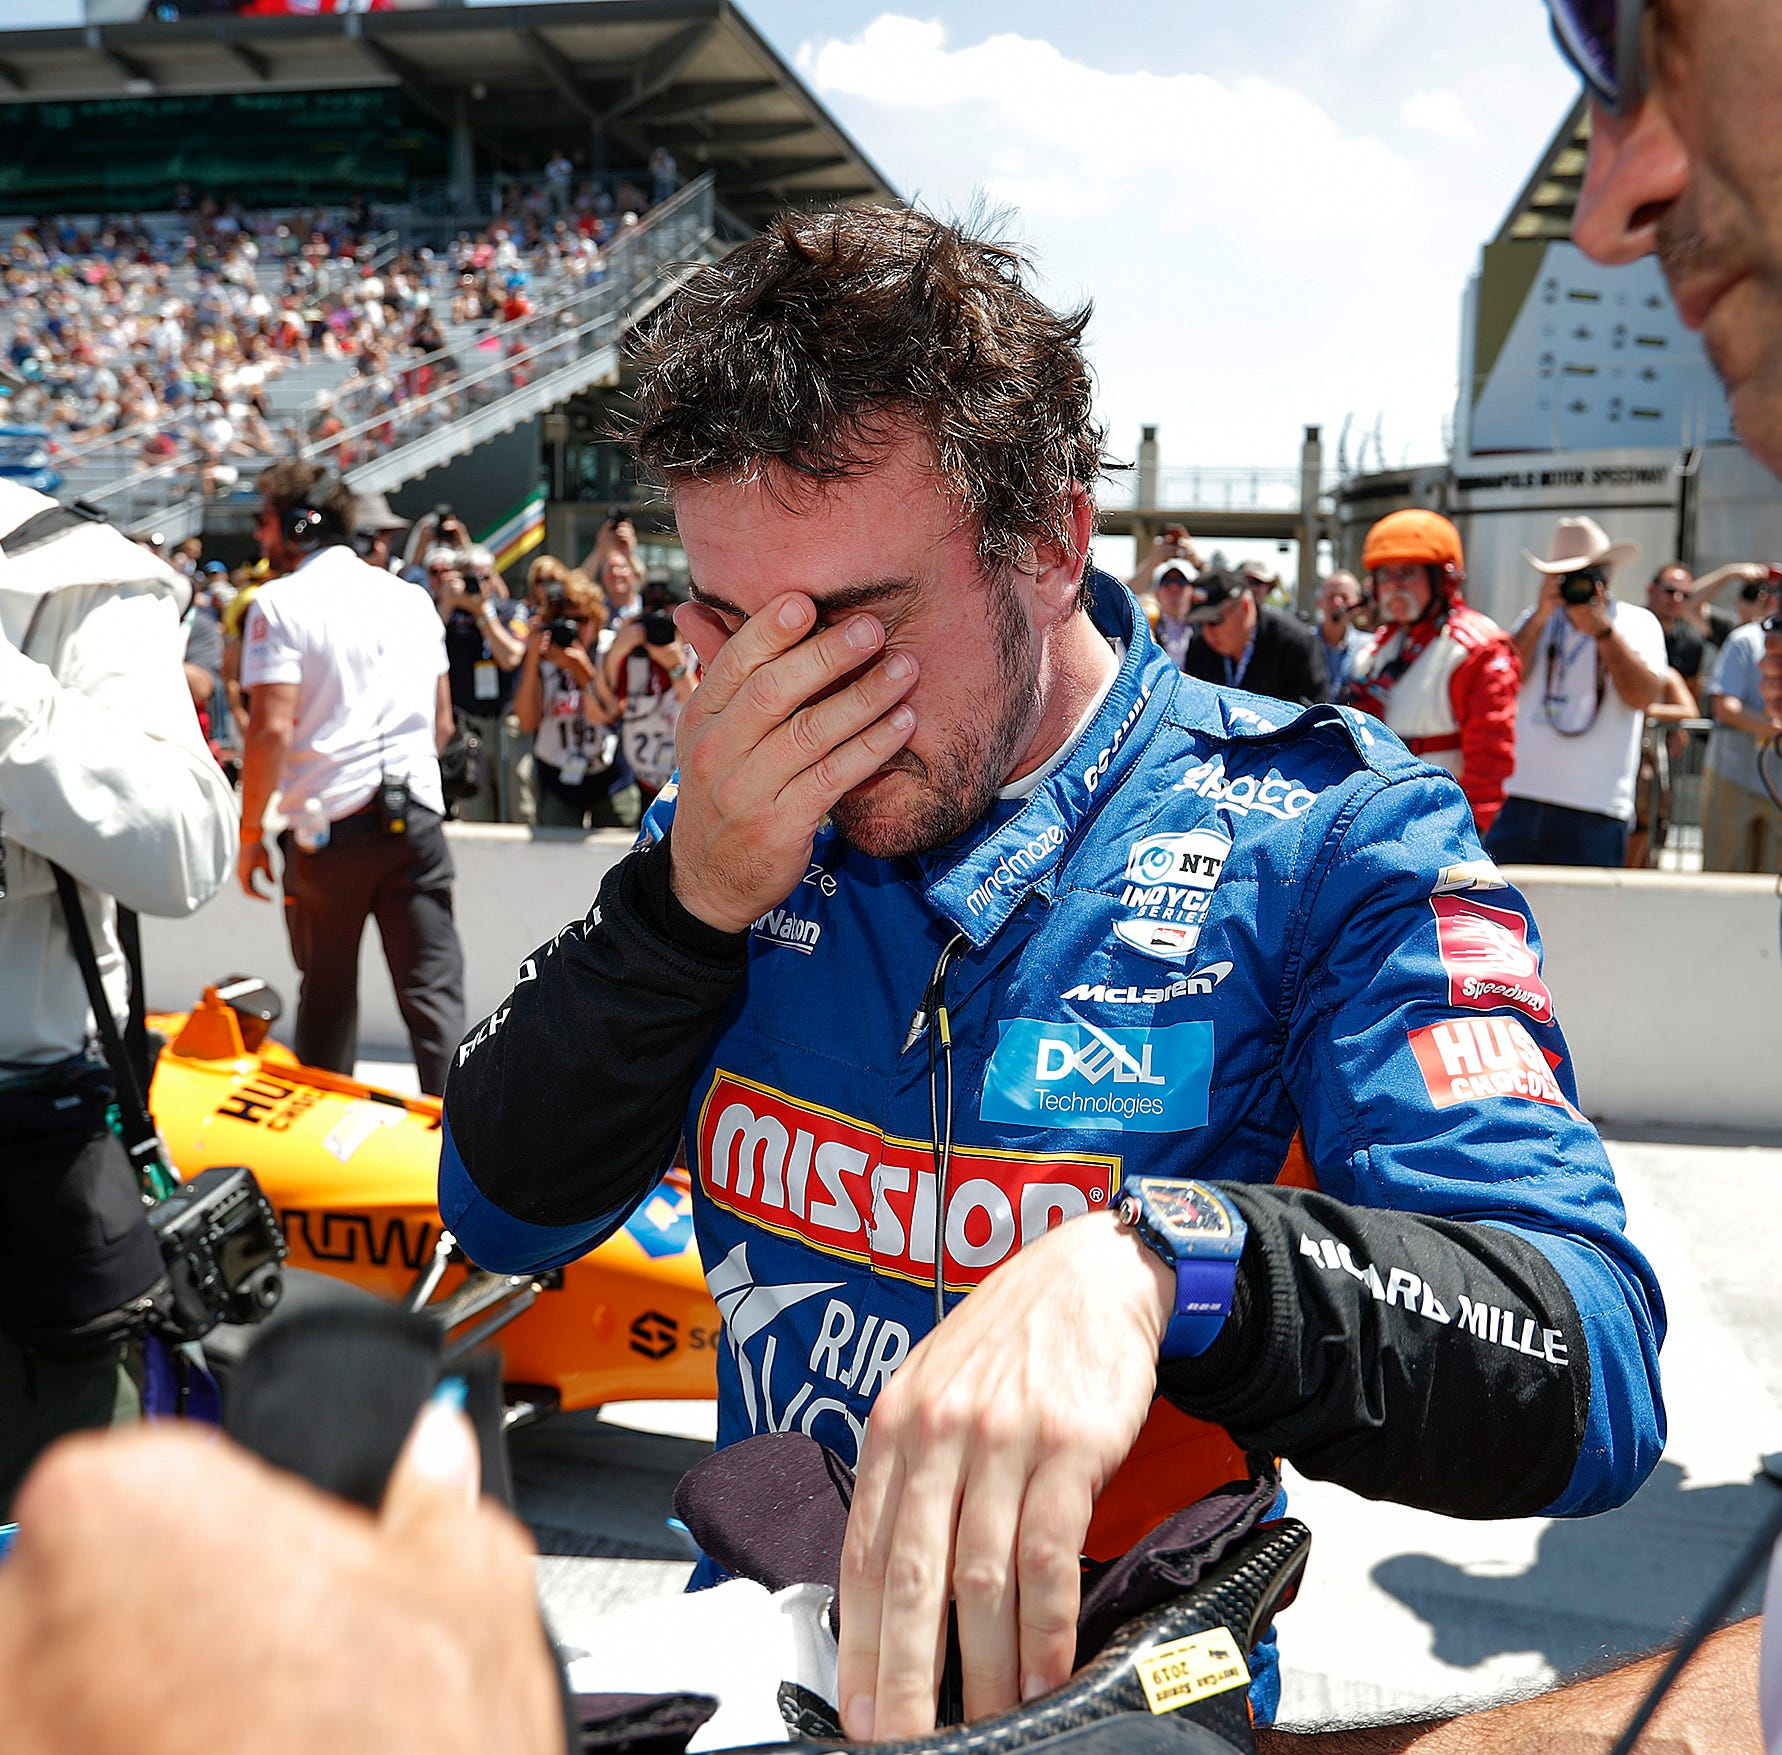 Fernando Alonso doesn't qualify for Indy 500 on Saturday, in Sunday's Last Row Shootout